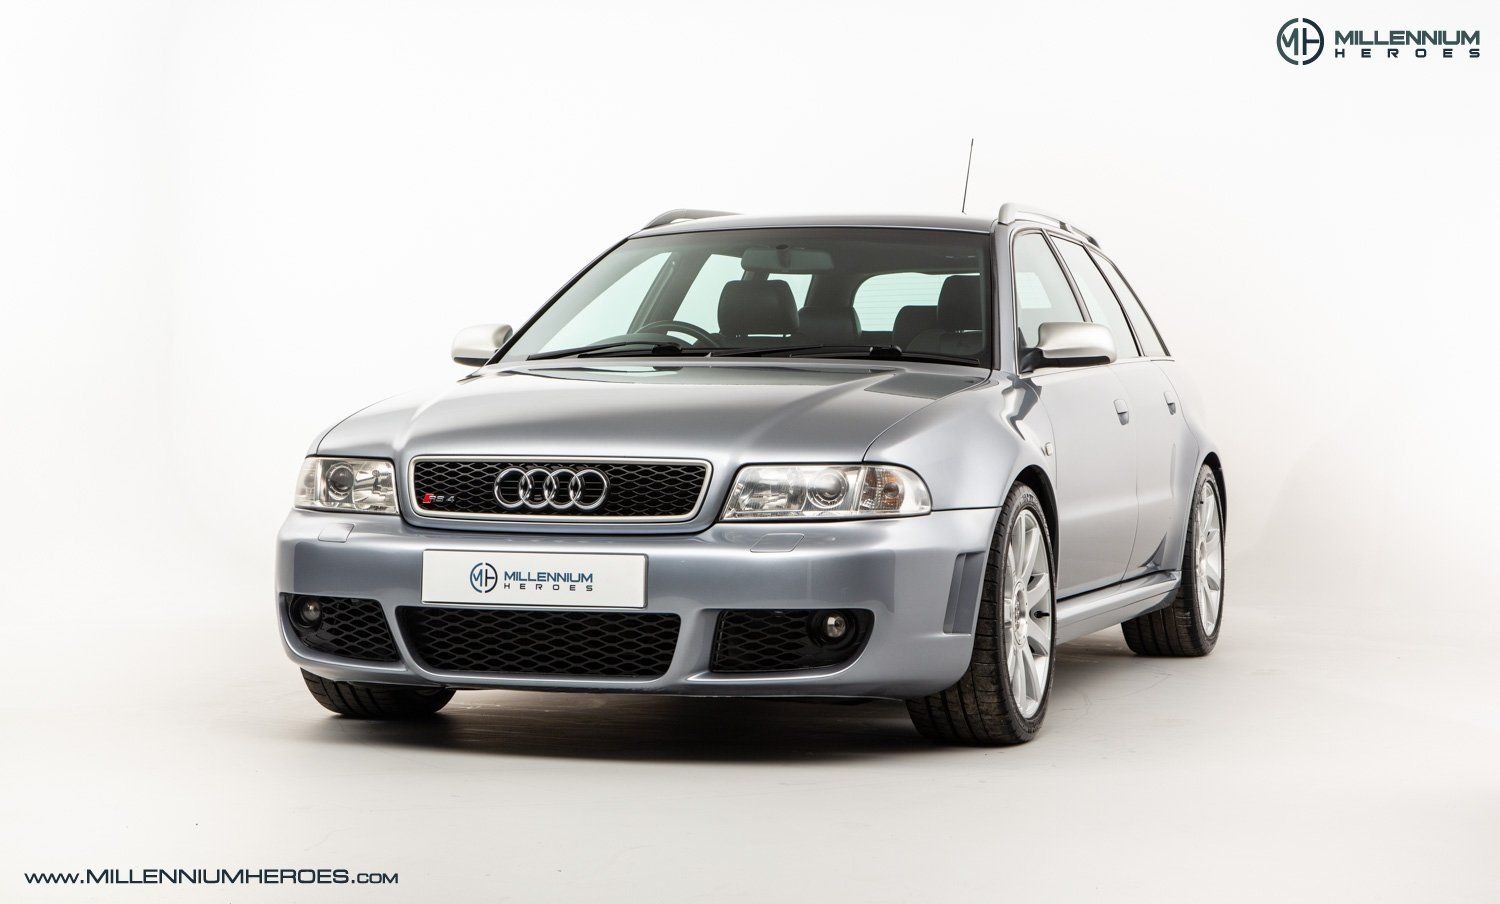 2001 AUDI B5 RS4 AVANT // 95K MILES // AVUS SILVER For Sale (picture 1 of 28)